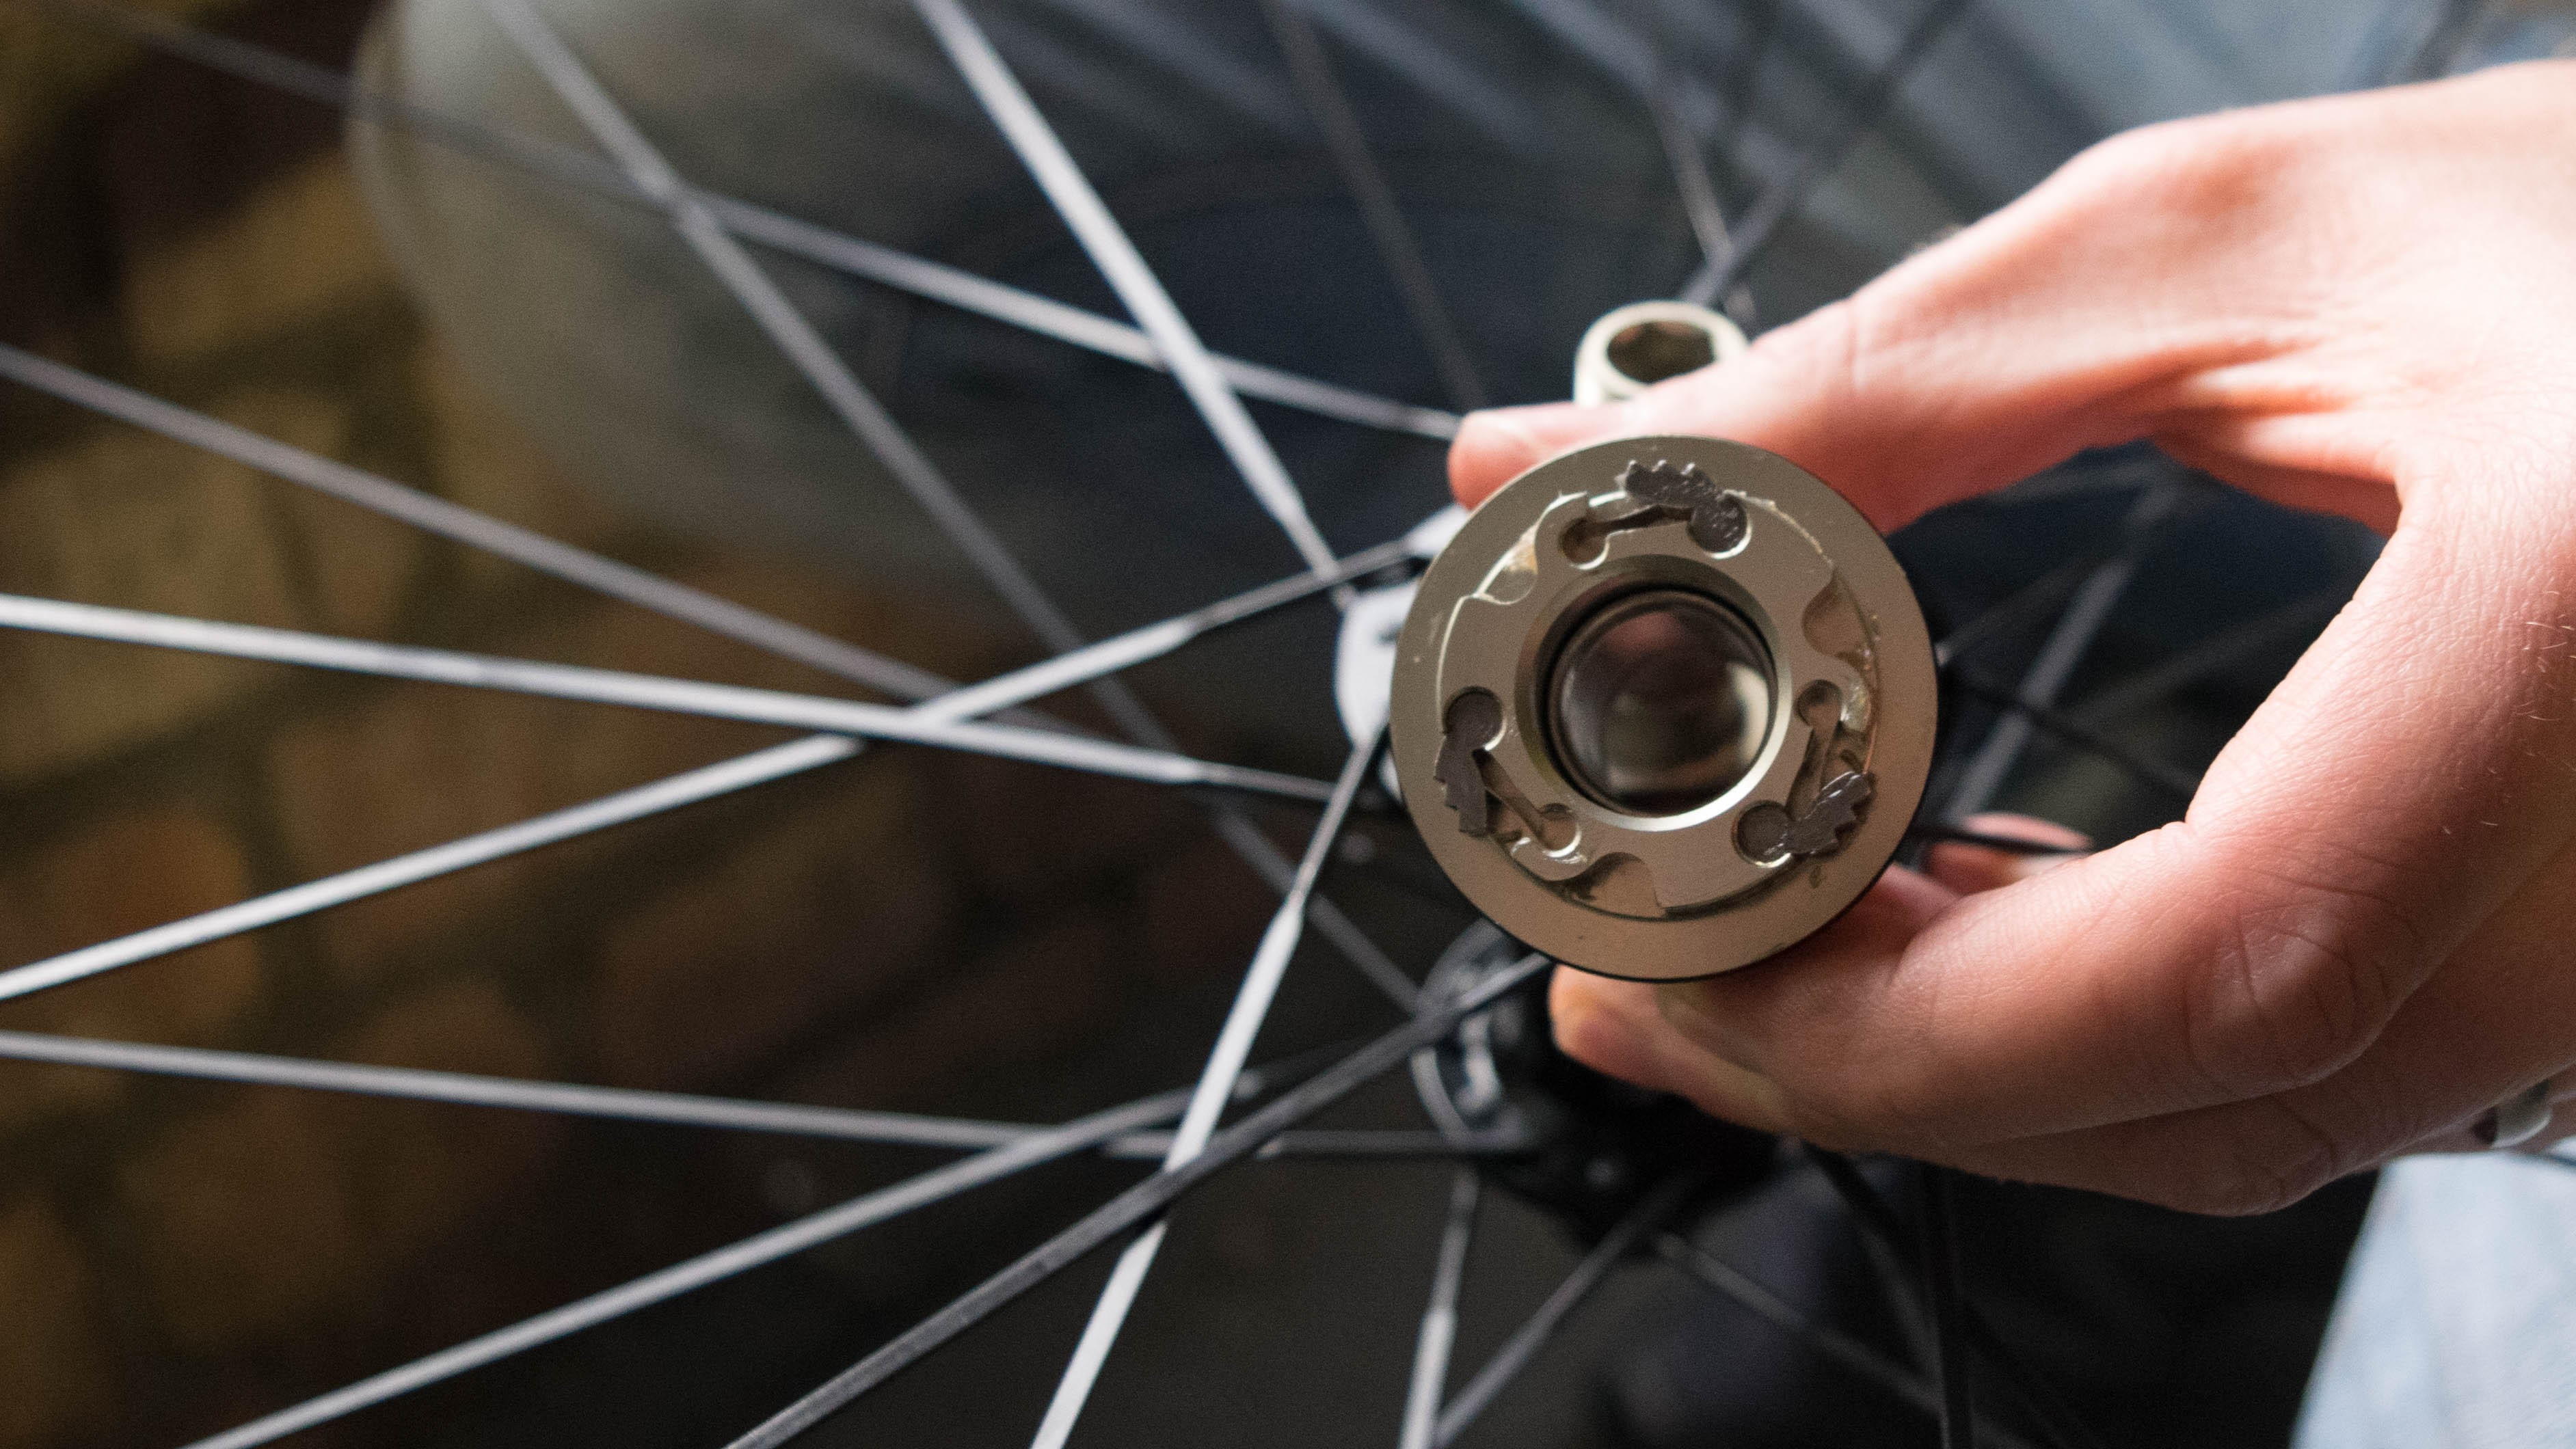 The freehub body has three pawls, each with an independently moving leaf spring, to spread the loads more effectively